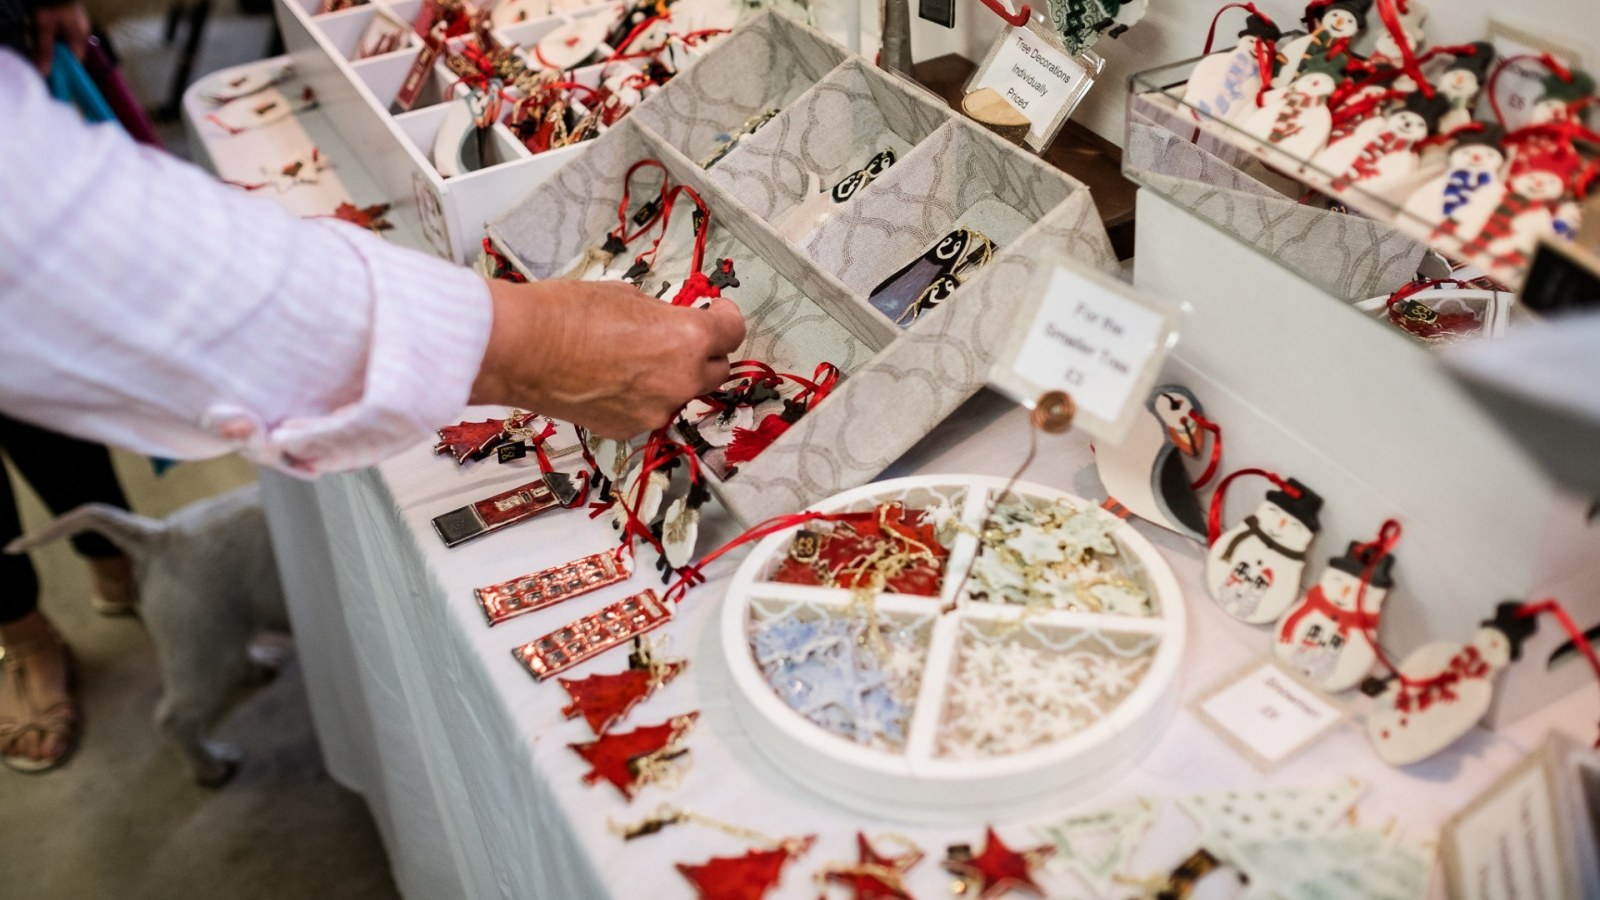 Handcraft and Gift Markets